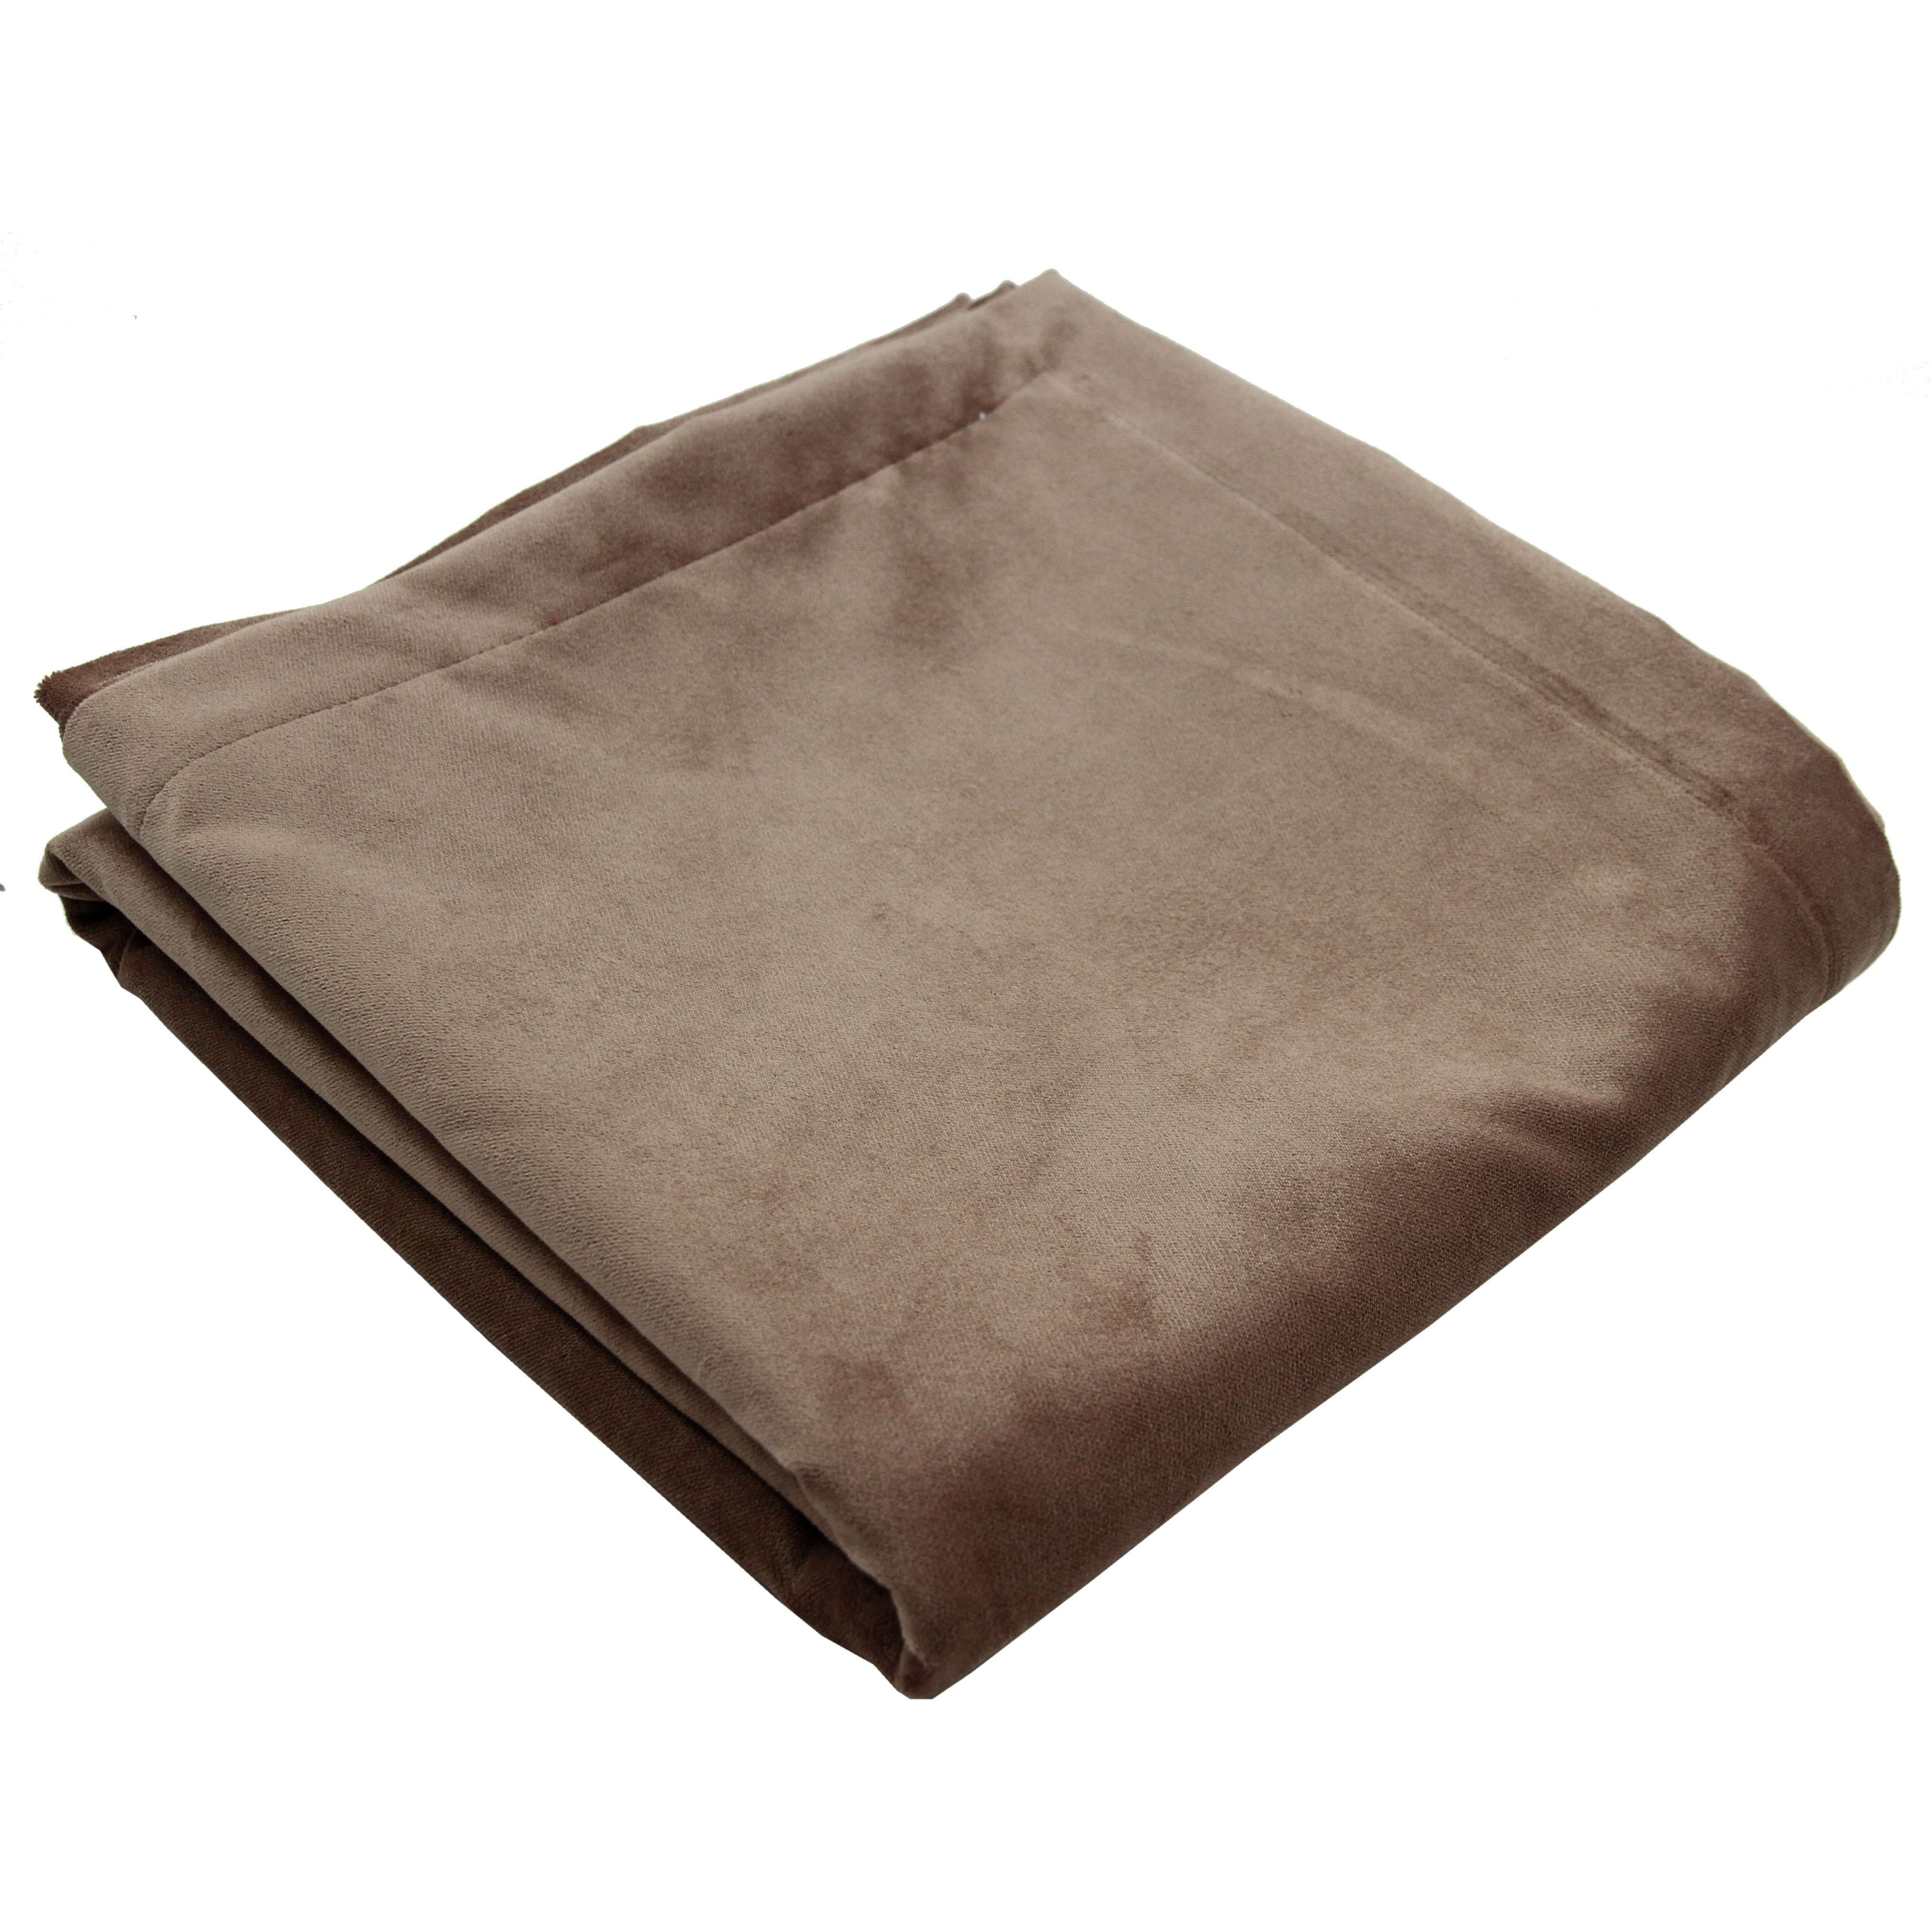 McAlister Textiles Matt Mocha Brown Velvet Throw Blanket Throws and Runners Bed Runner (50cm x 240cm)